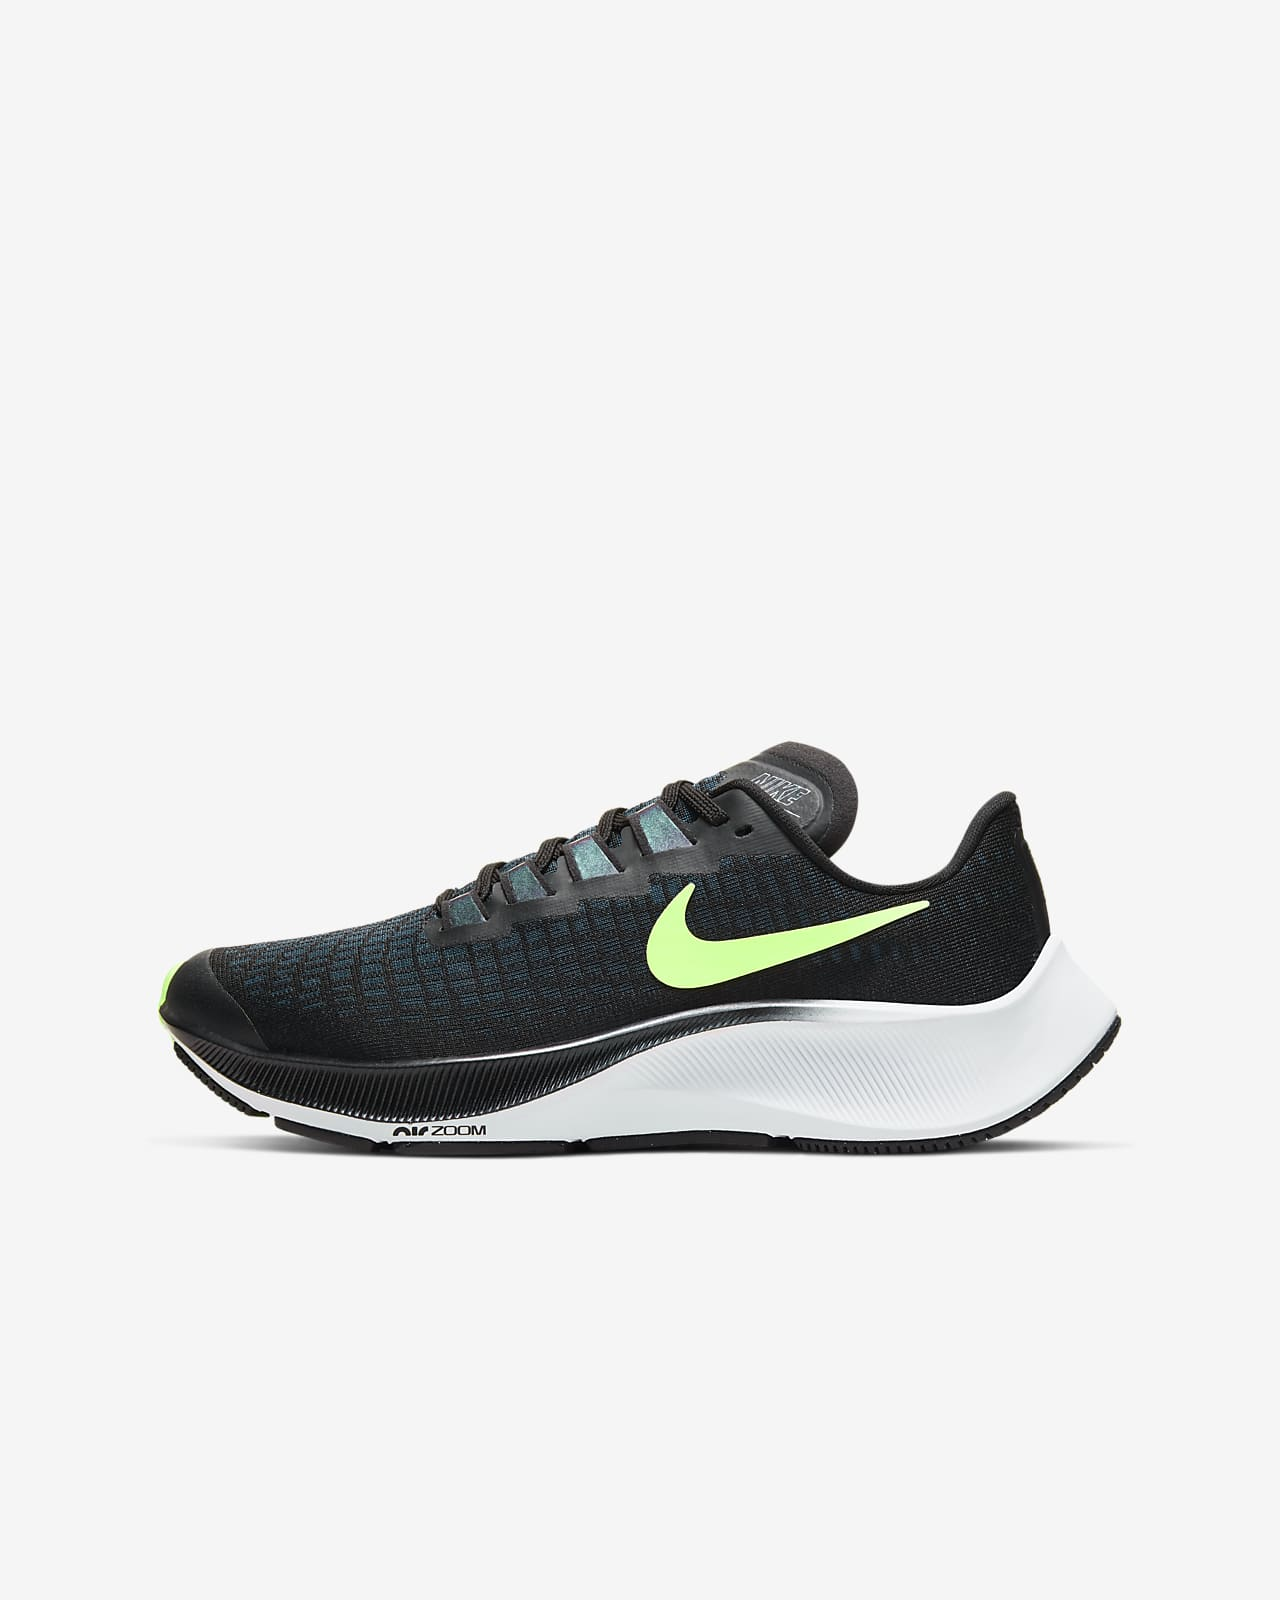 Nike Air Zoom Pegasus 37 Zapatillas de running - Niño/a